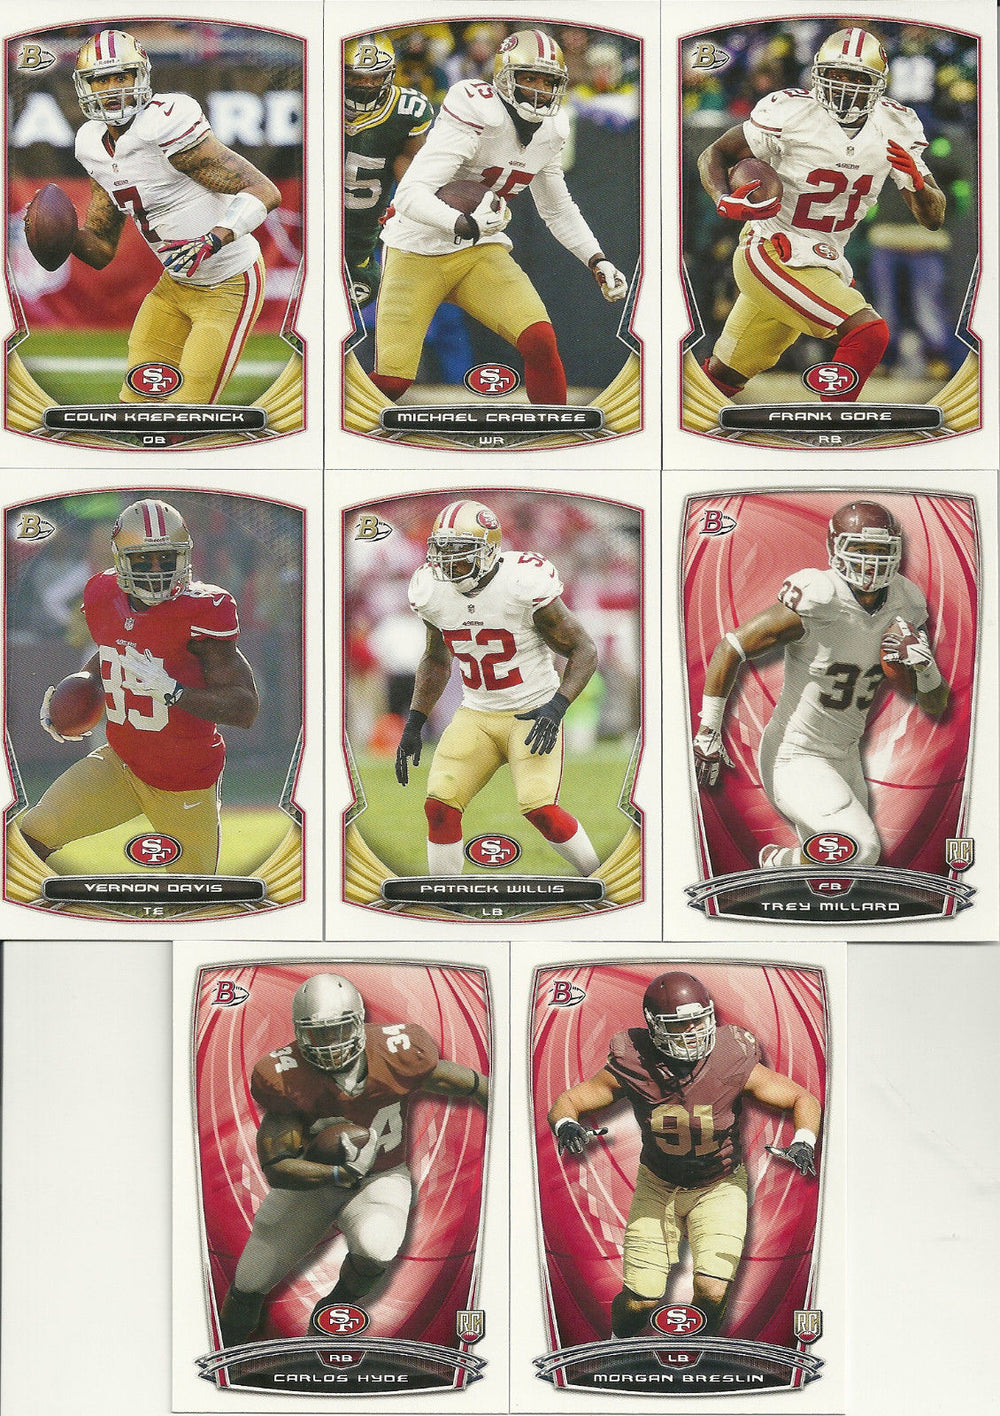 San Francisco 49ers 2014 Bowman 8 Card Team Set with Colin Kaepernick and Frank Gore Plus